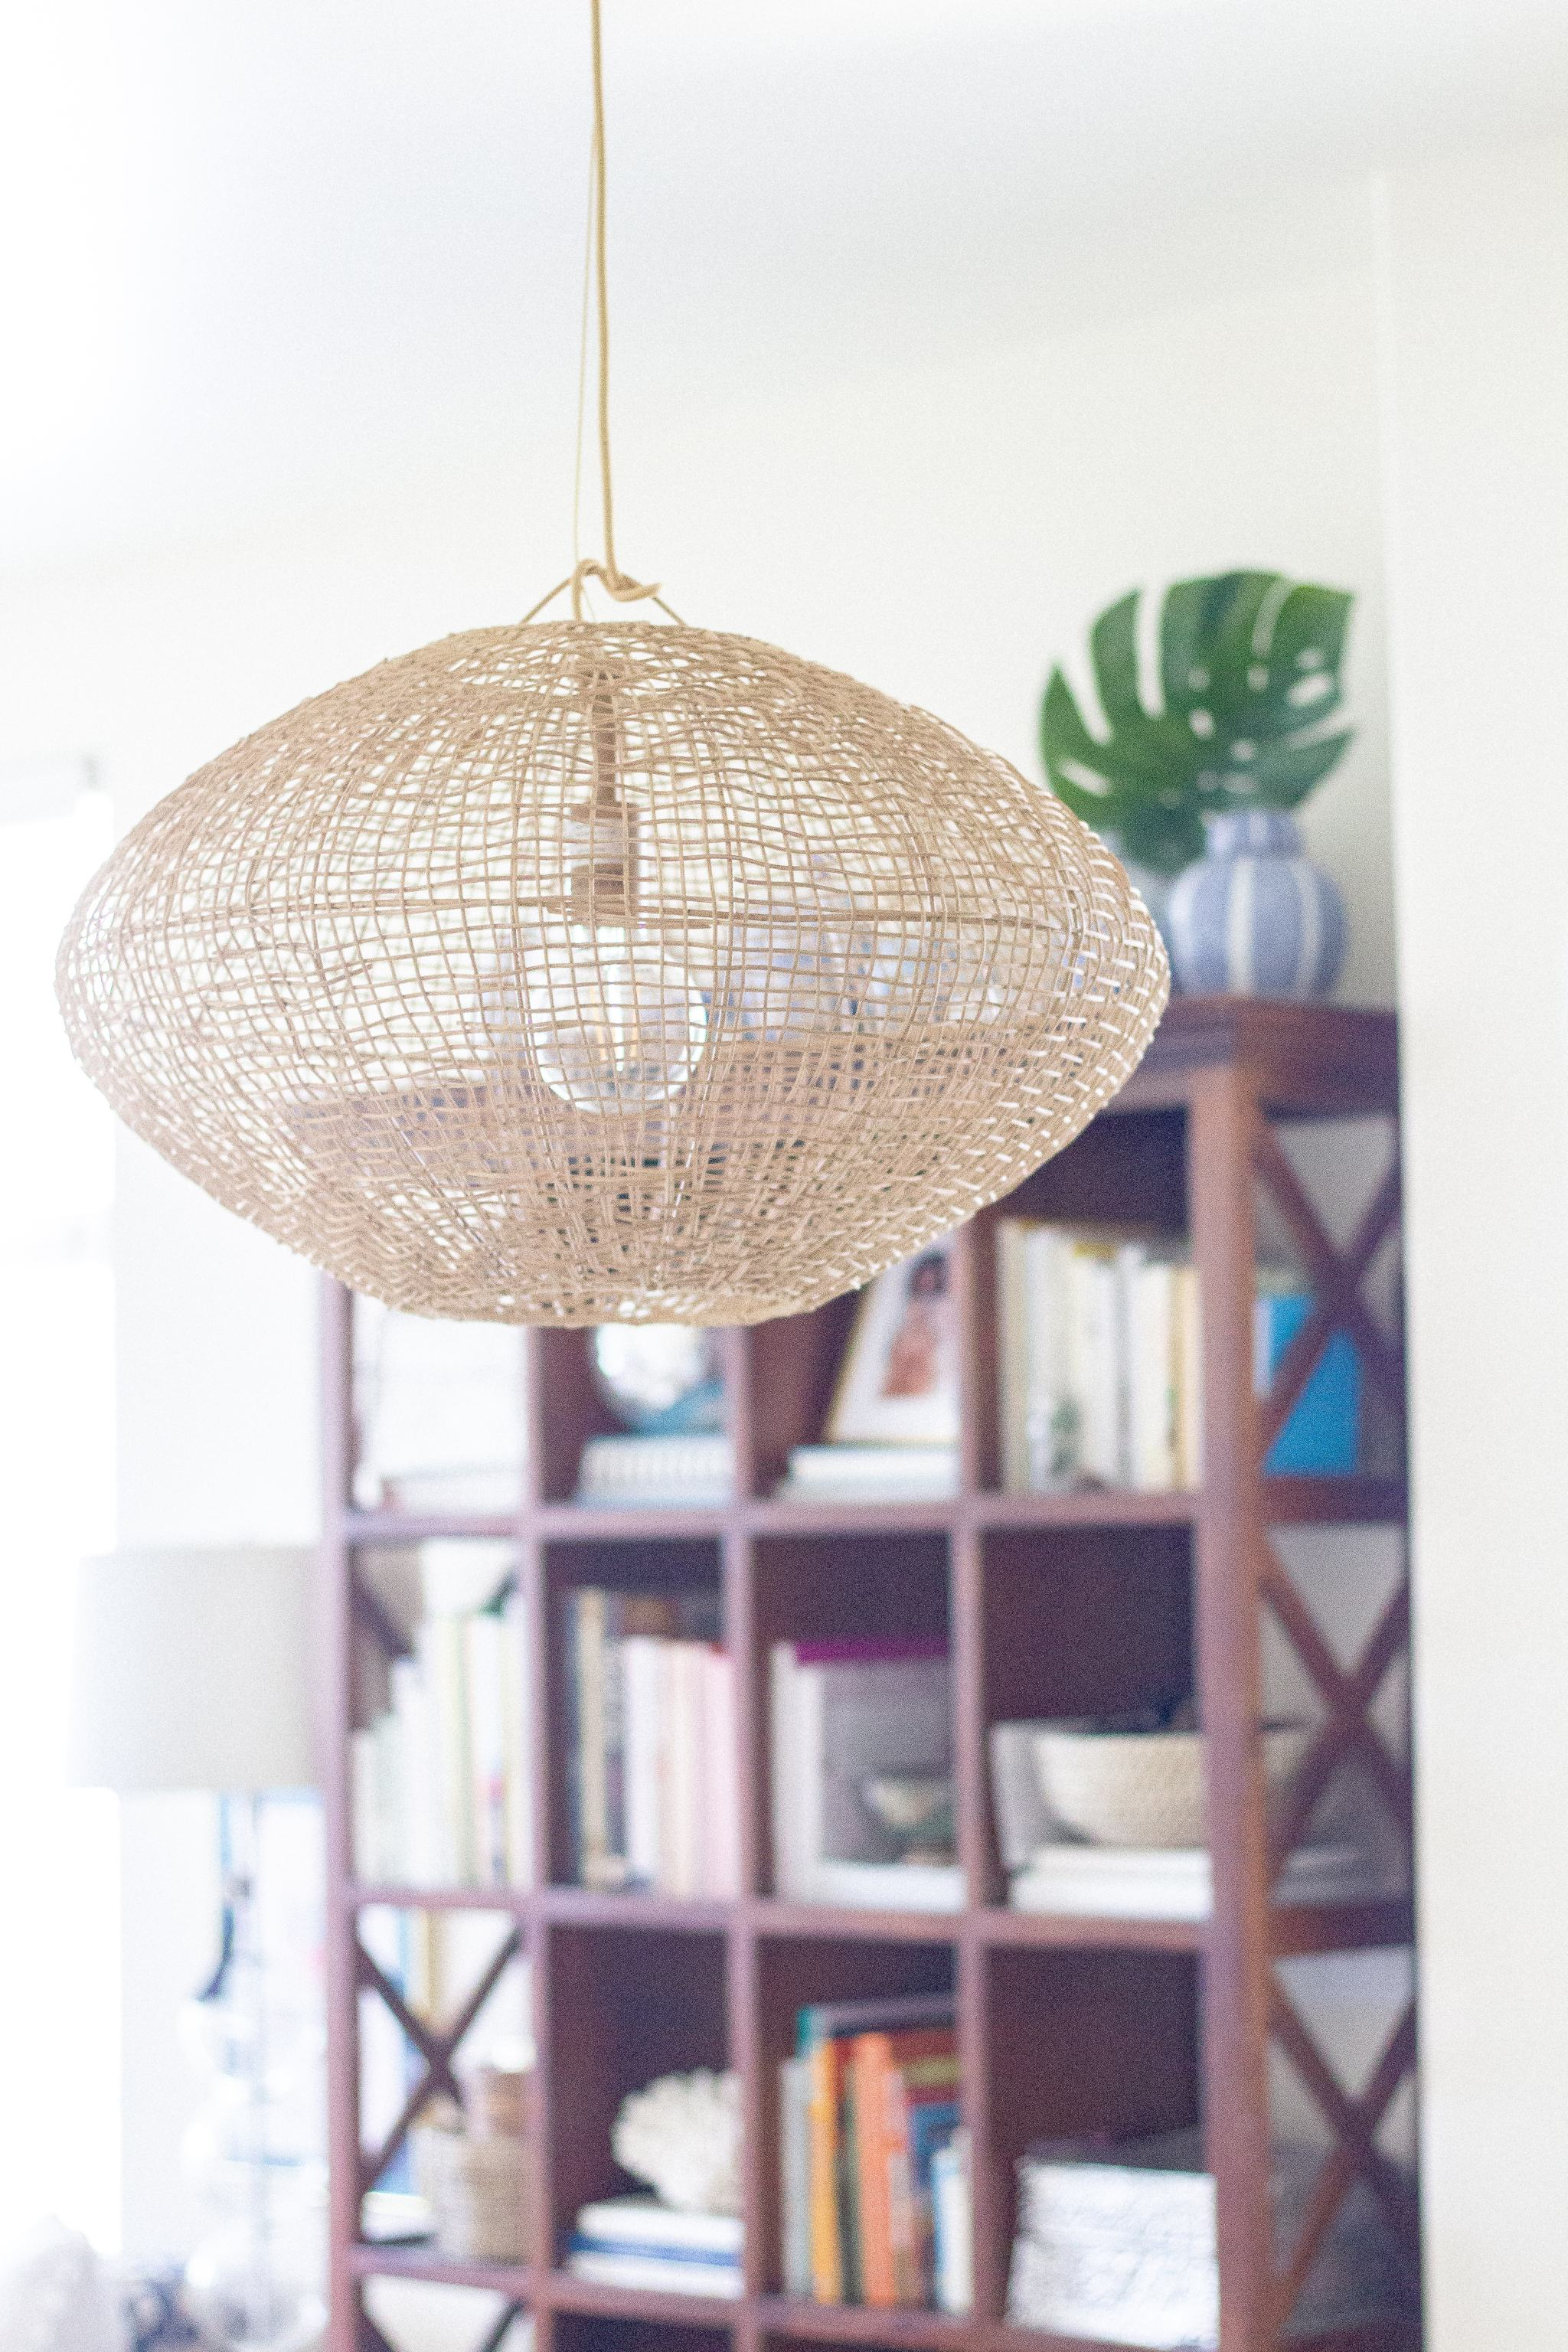 woven chandelier - project 62 Leanne Ford lights - rattan chandelier - wicker chandelier - natural light fixtures - serena and lily lighting - beach house chandelier - beachy decor